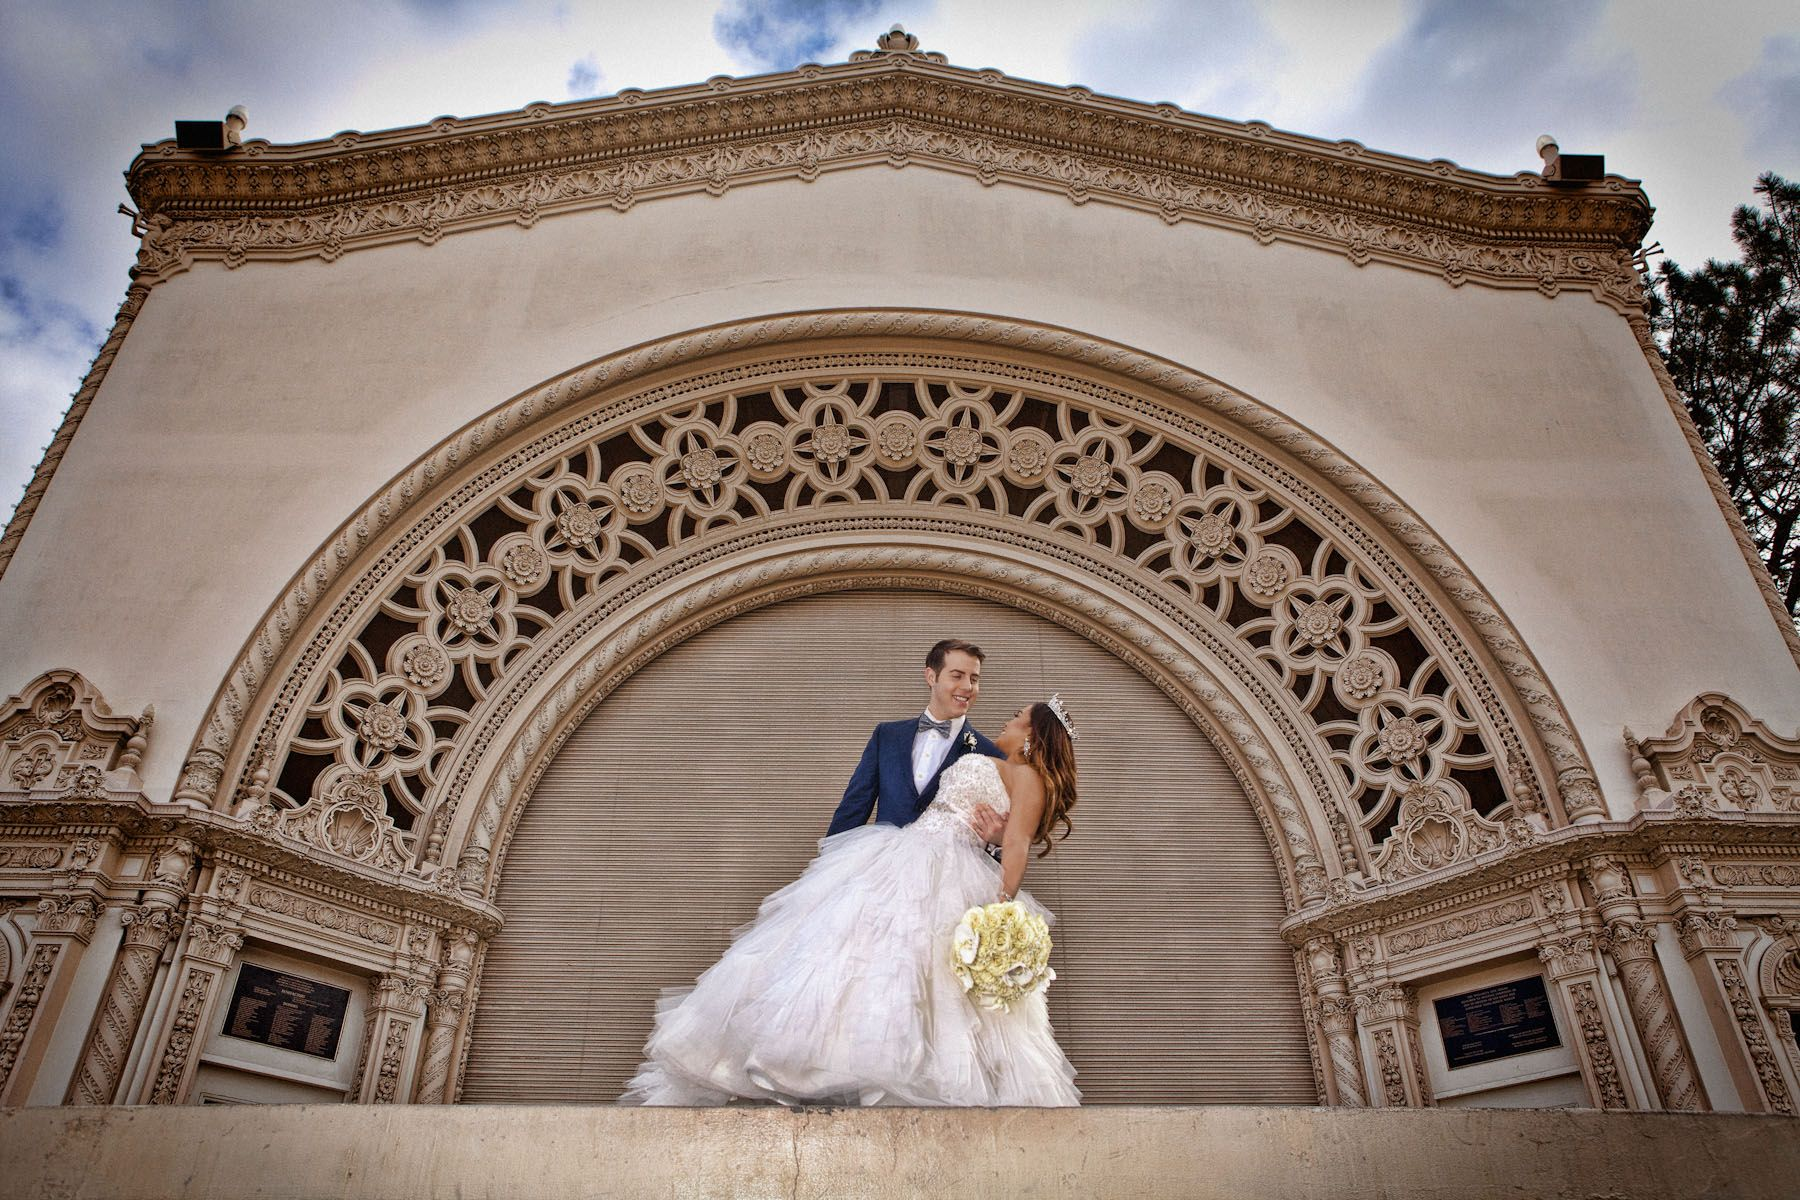 Wedding Photography, The Prado / Balboa Park, San Diego CA